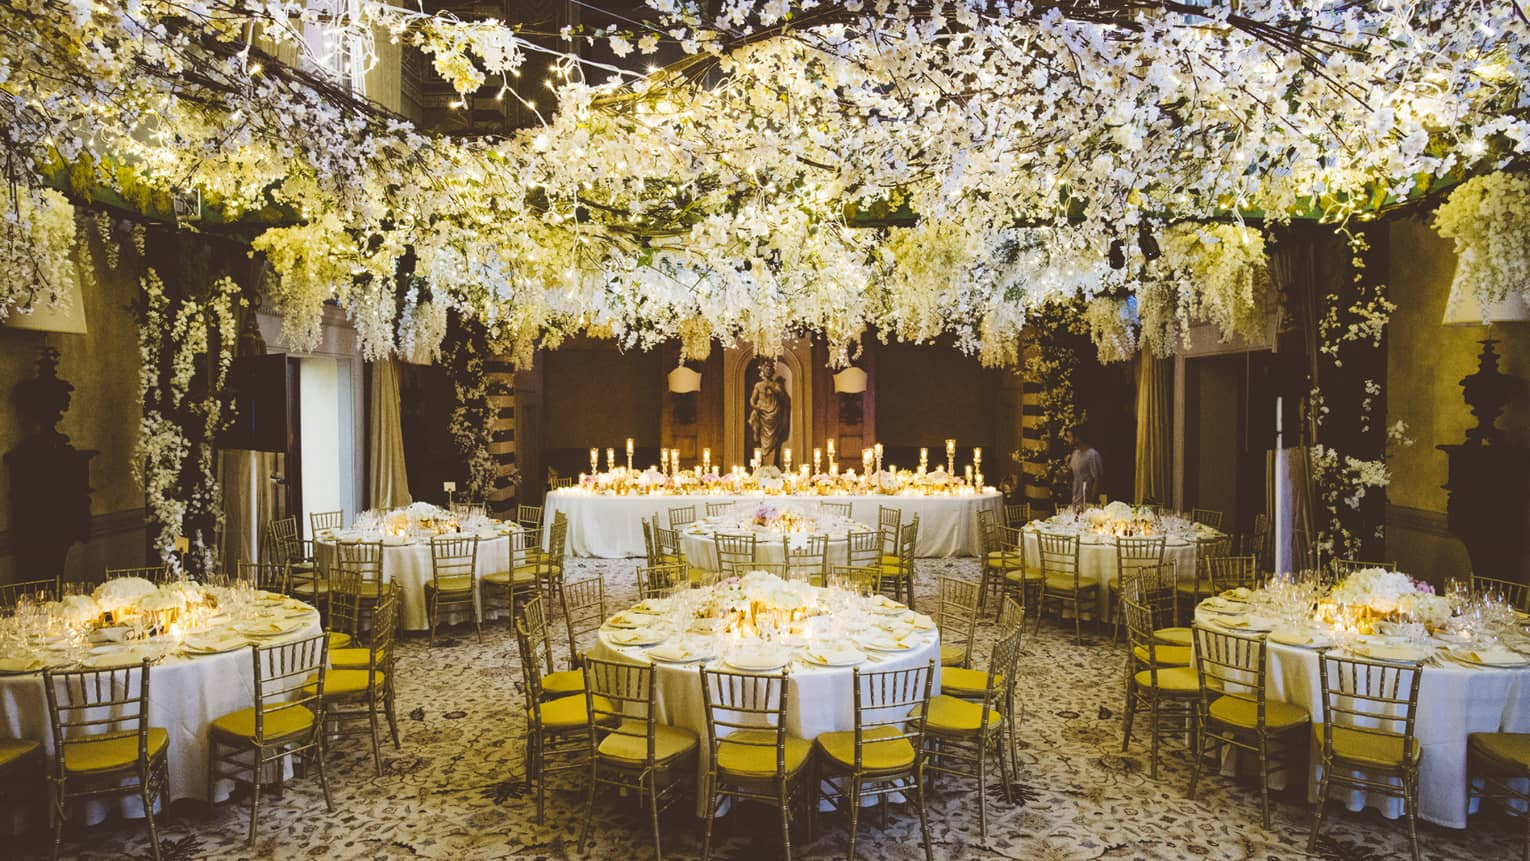 A white floral installation hangs from the ceiling over circular tables are set with white table cloths, brown wooden chairs with yellow seats